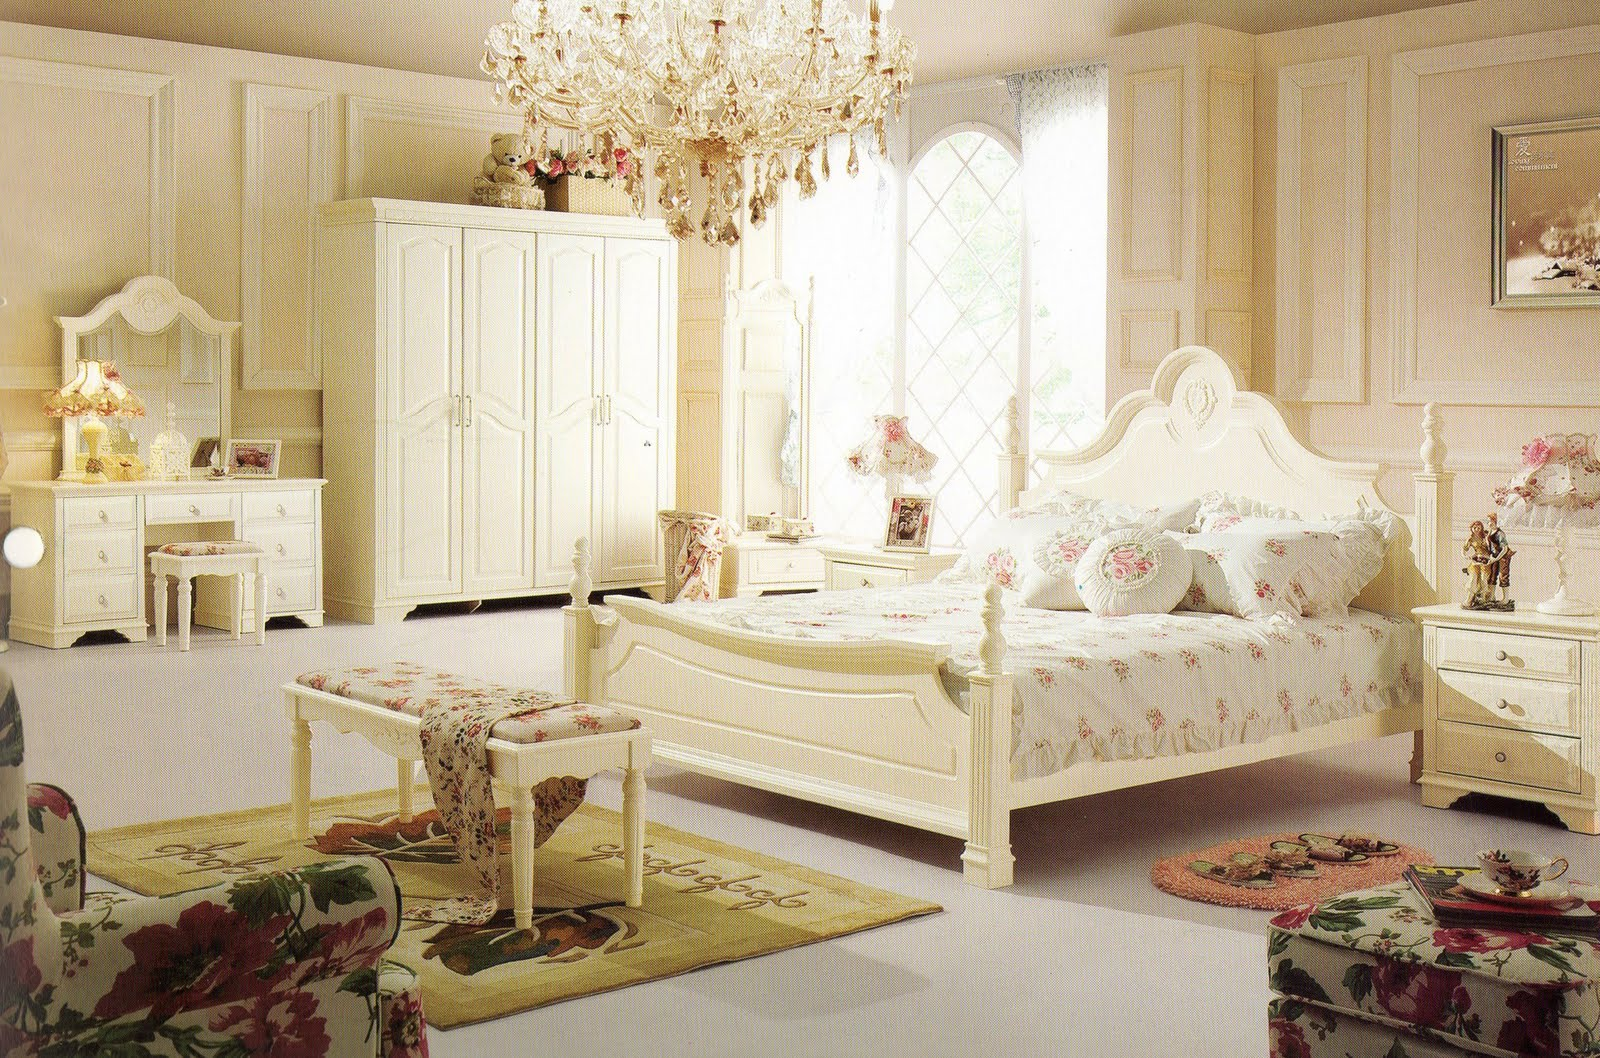 Fsd new arrival of our beautiful and elegant french style for Bedroom ideas country